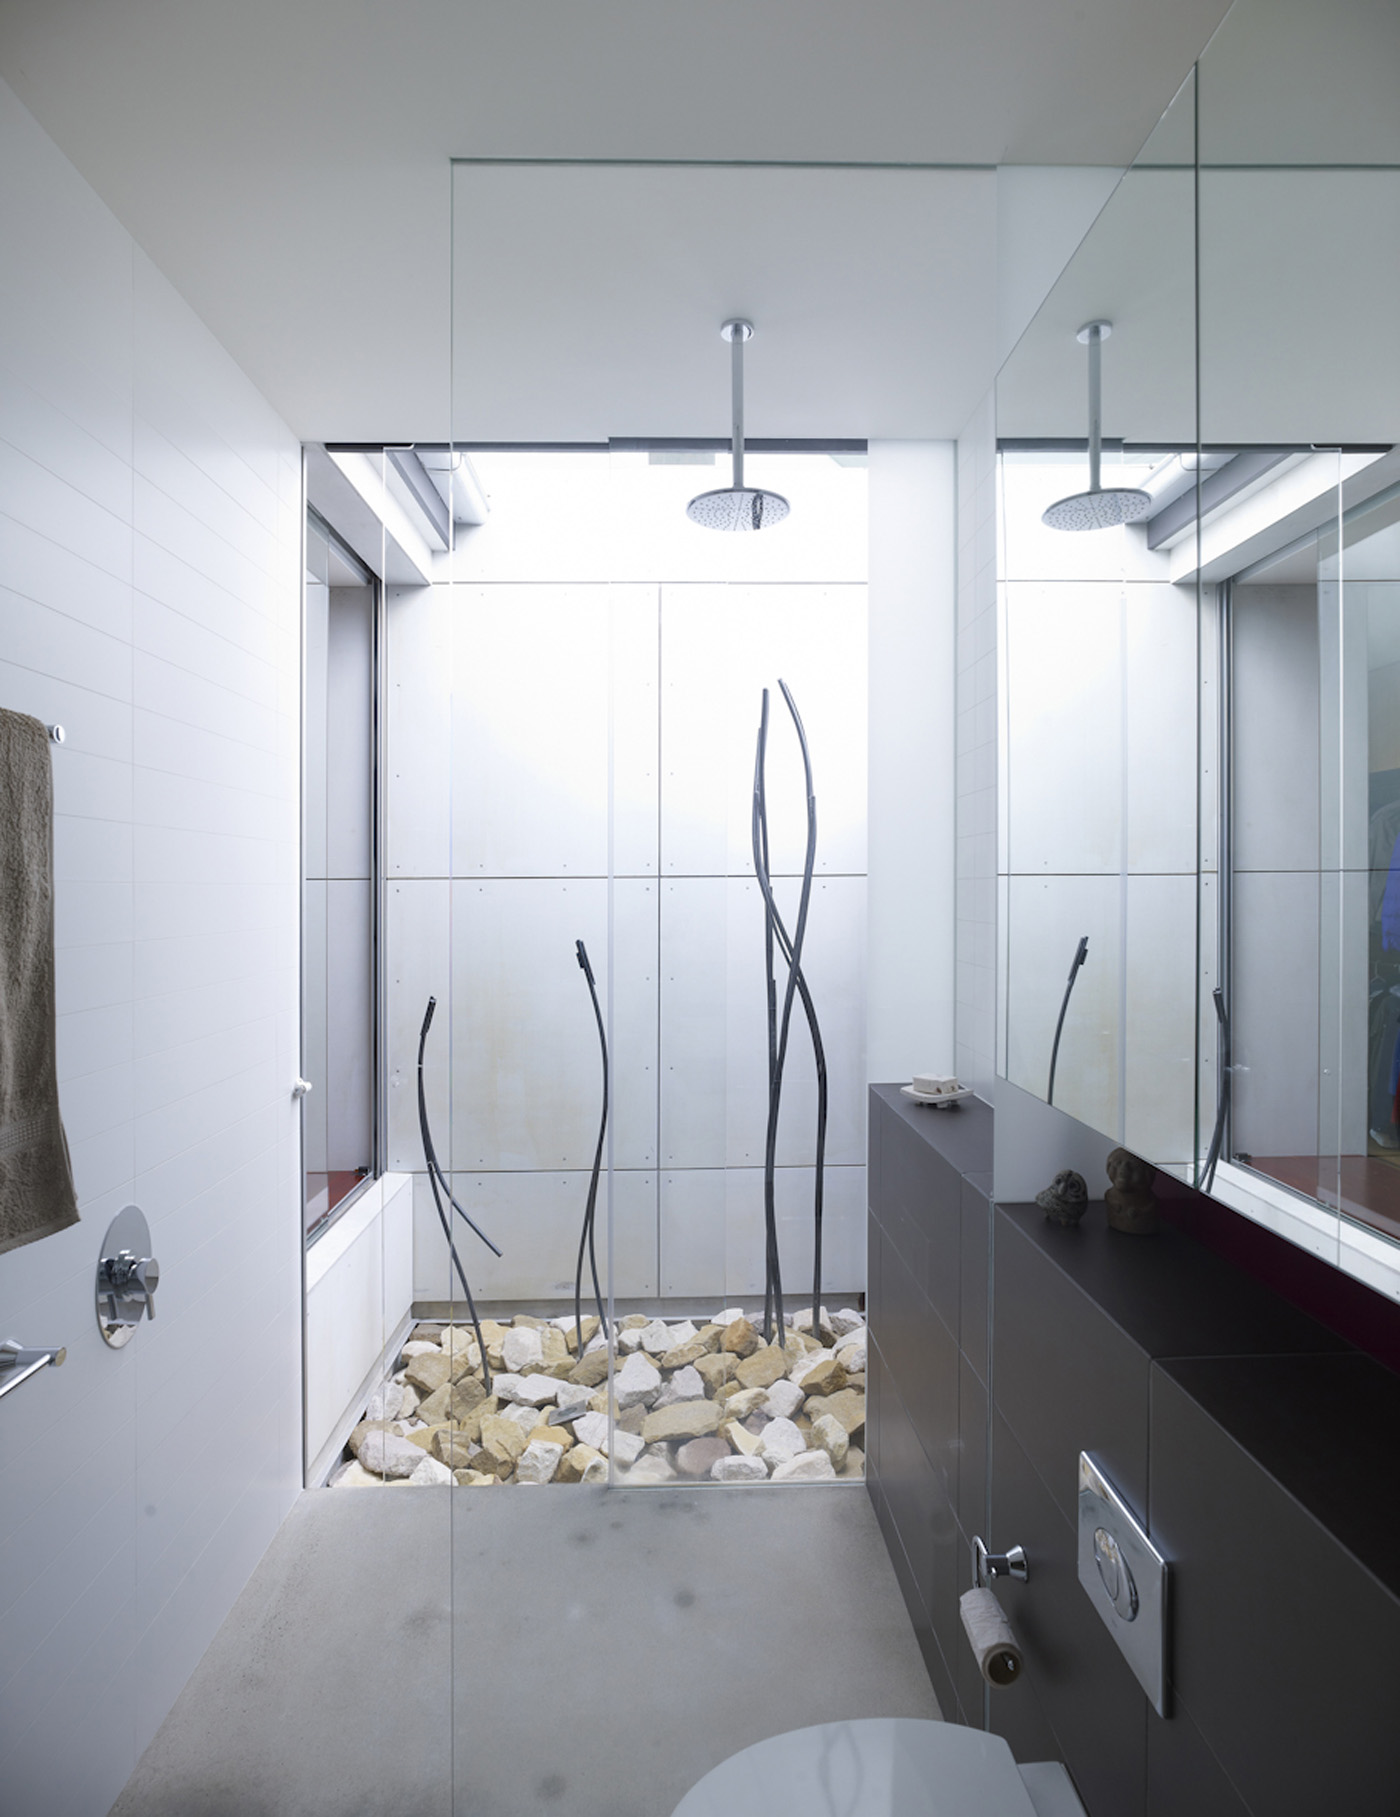 Garrett House by Sydney award winning architecture office Sam Crawford Architects. View to light filled bathroom